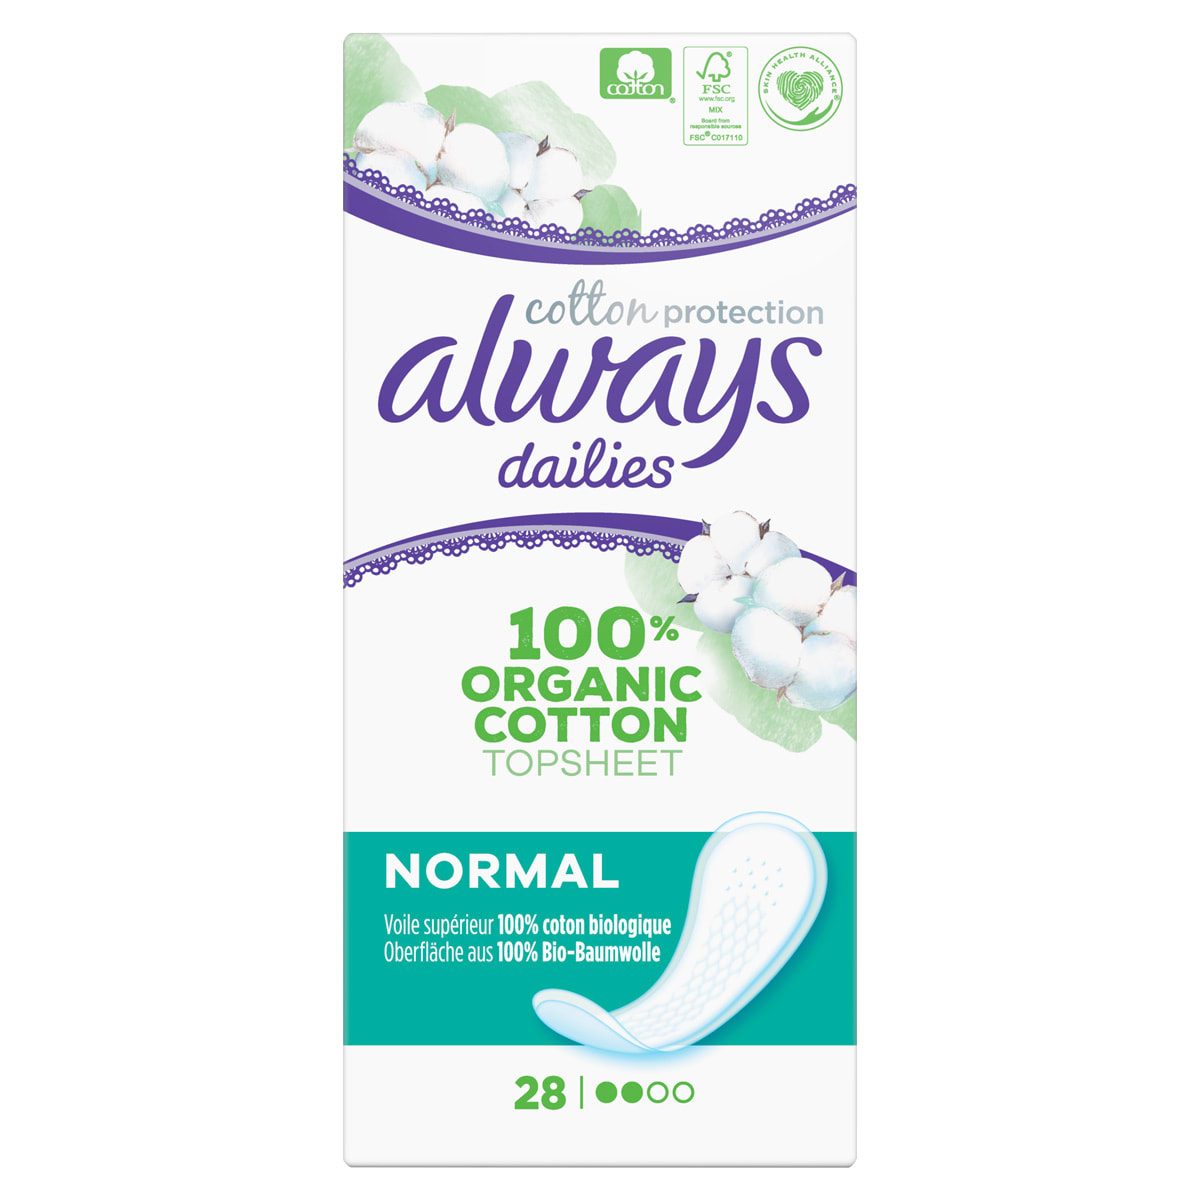 Always Cotton Protection Dailies, 100% Organic cotton core protection